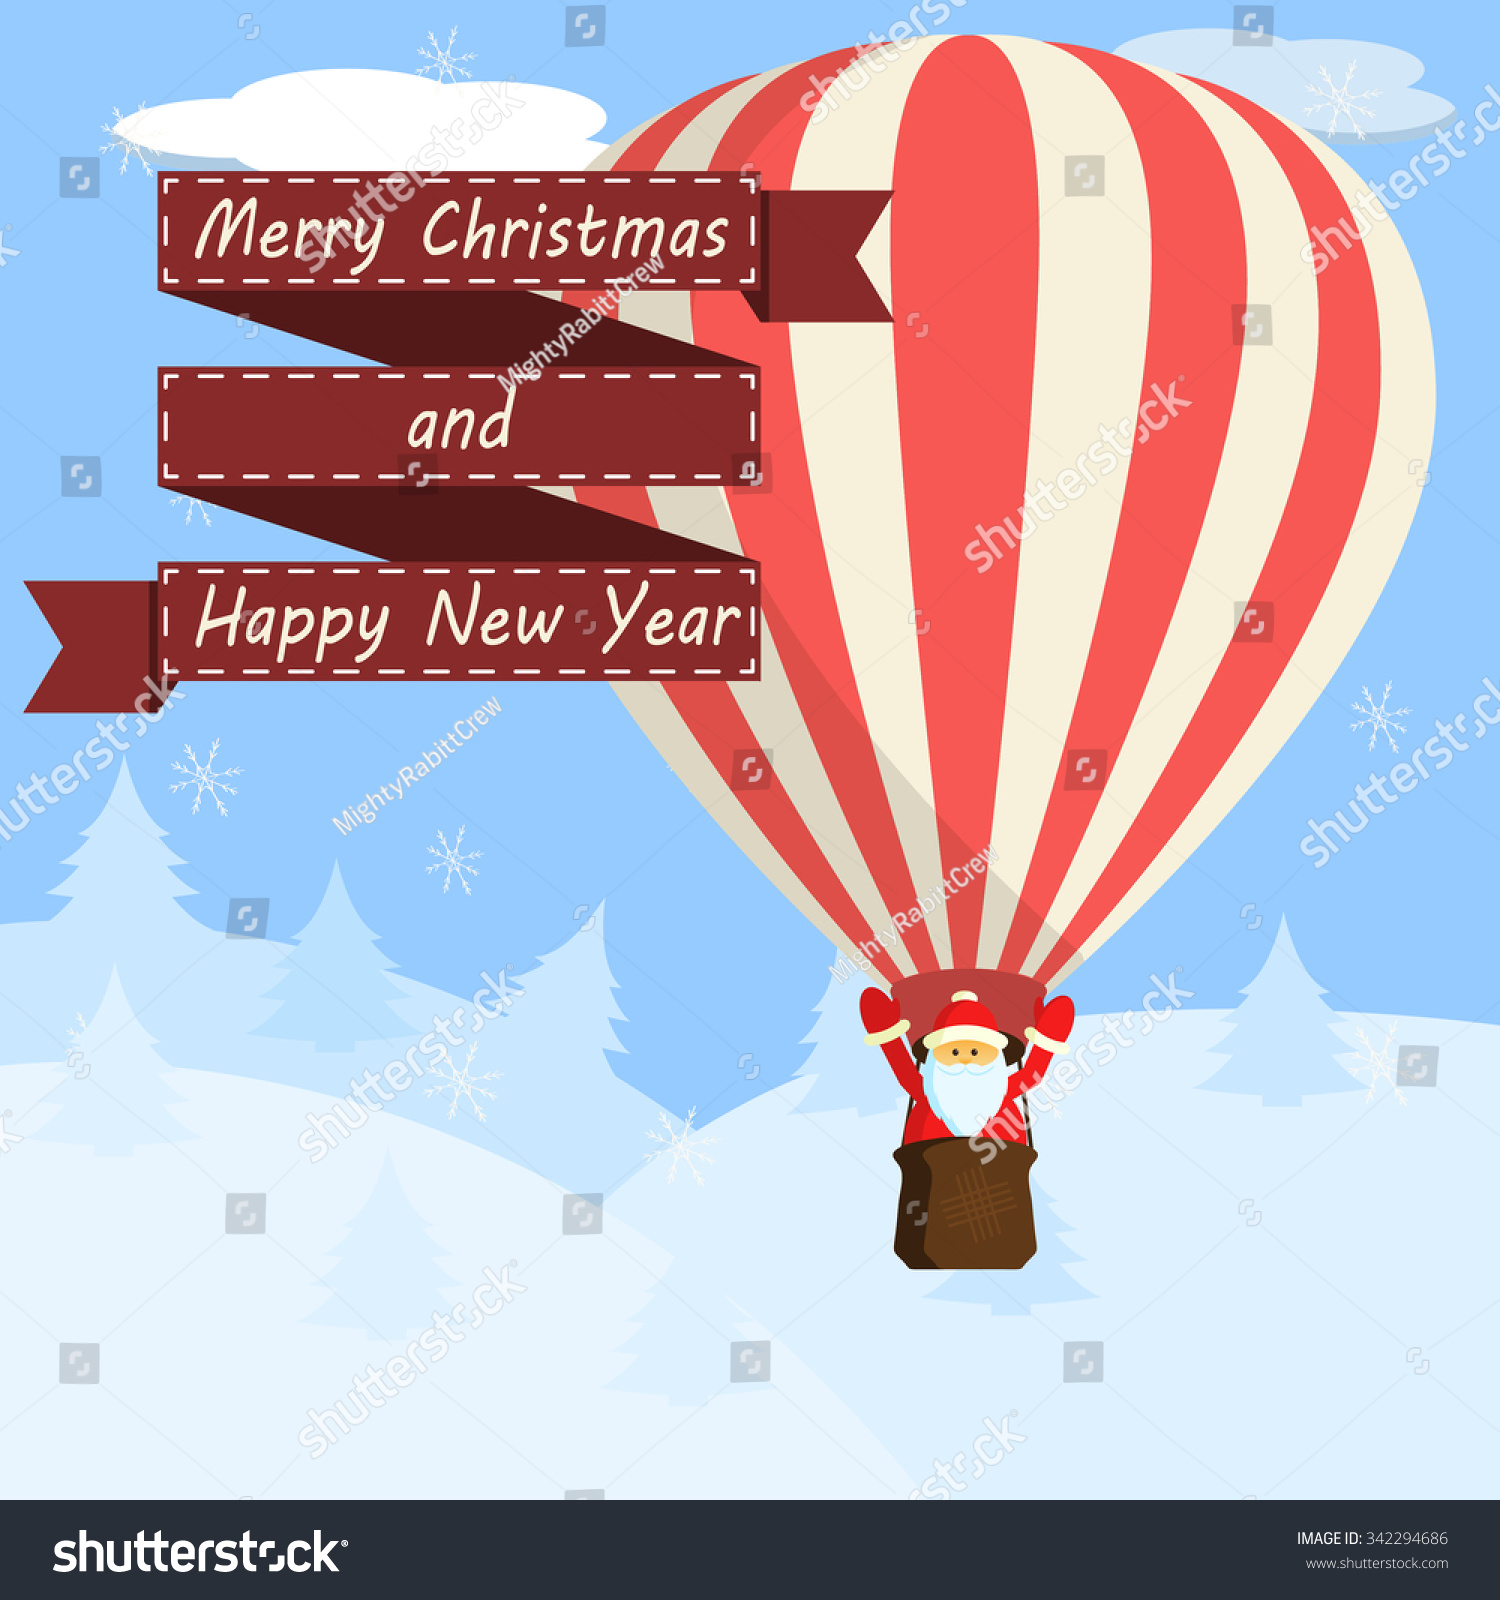 Vintage christmas greeting card santa claus stock vector royalty vintage christmas greeting card with santa claus flying in a hot air balloon over the winter m4hsunfo